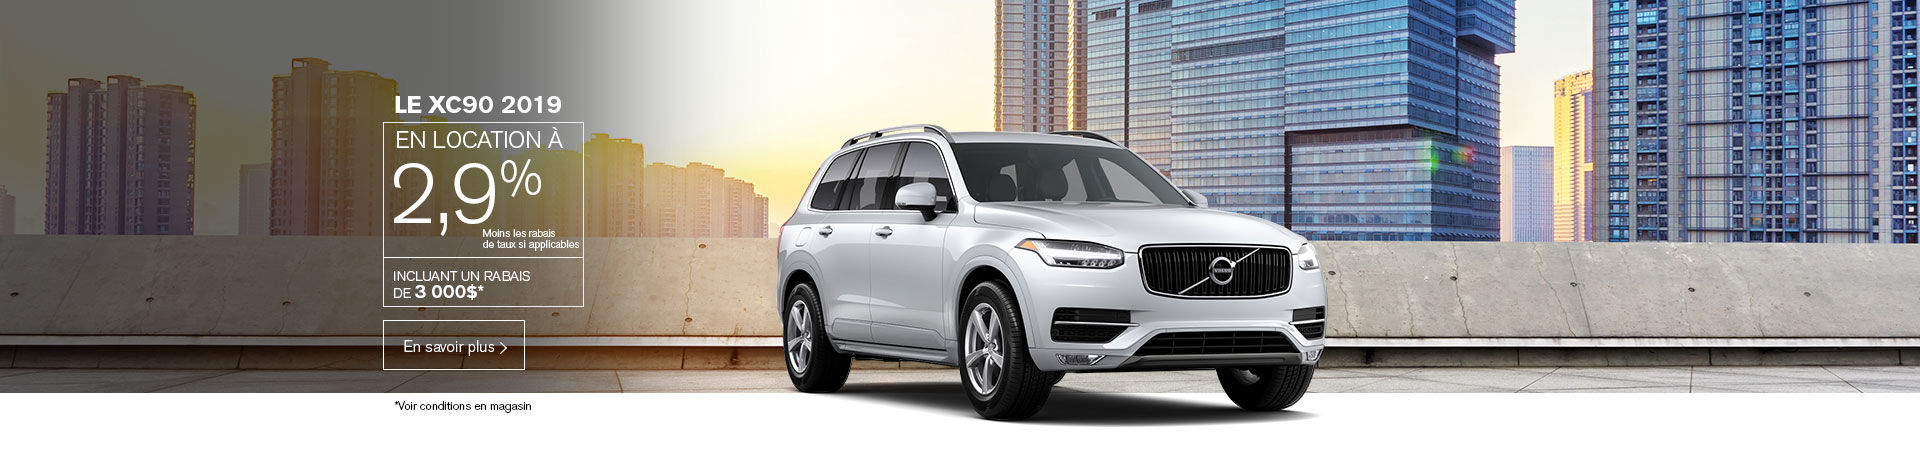 evenement signature volvo xc90